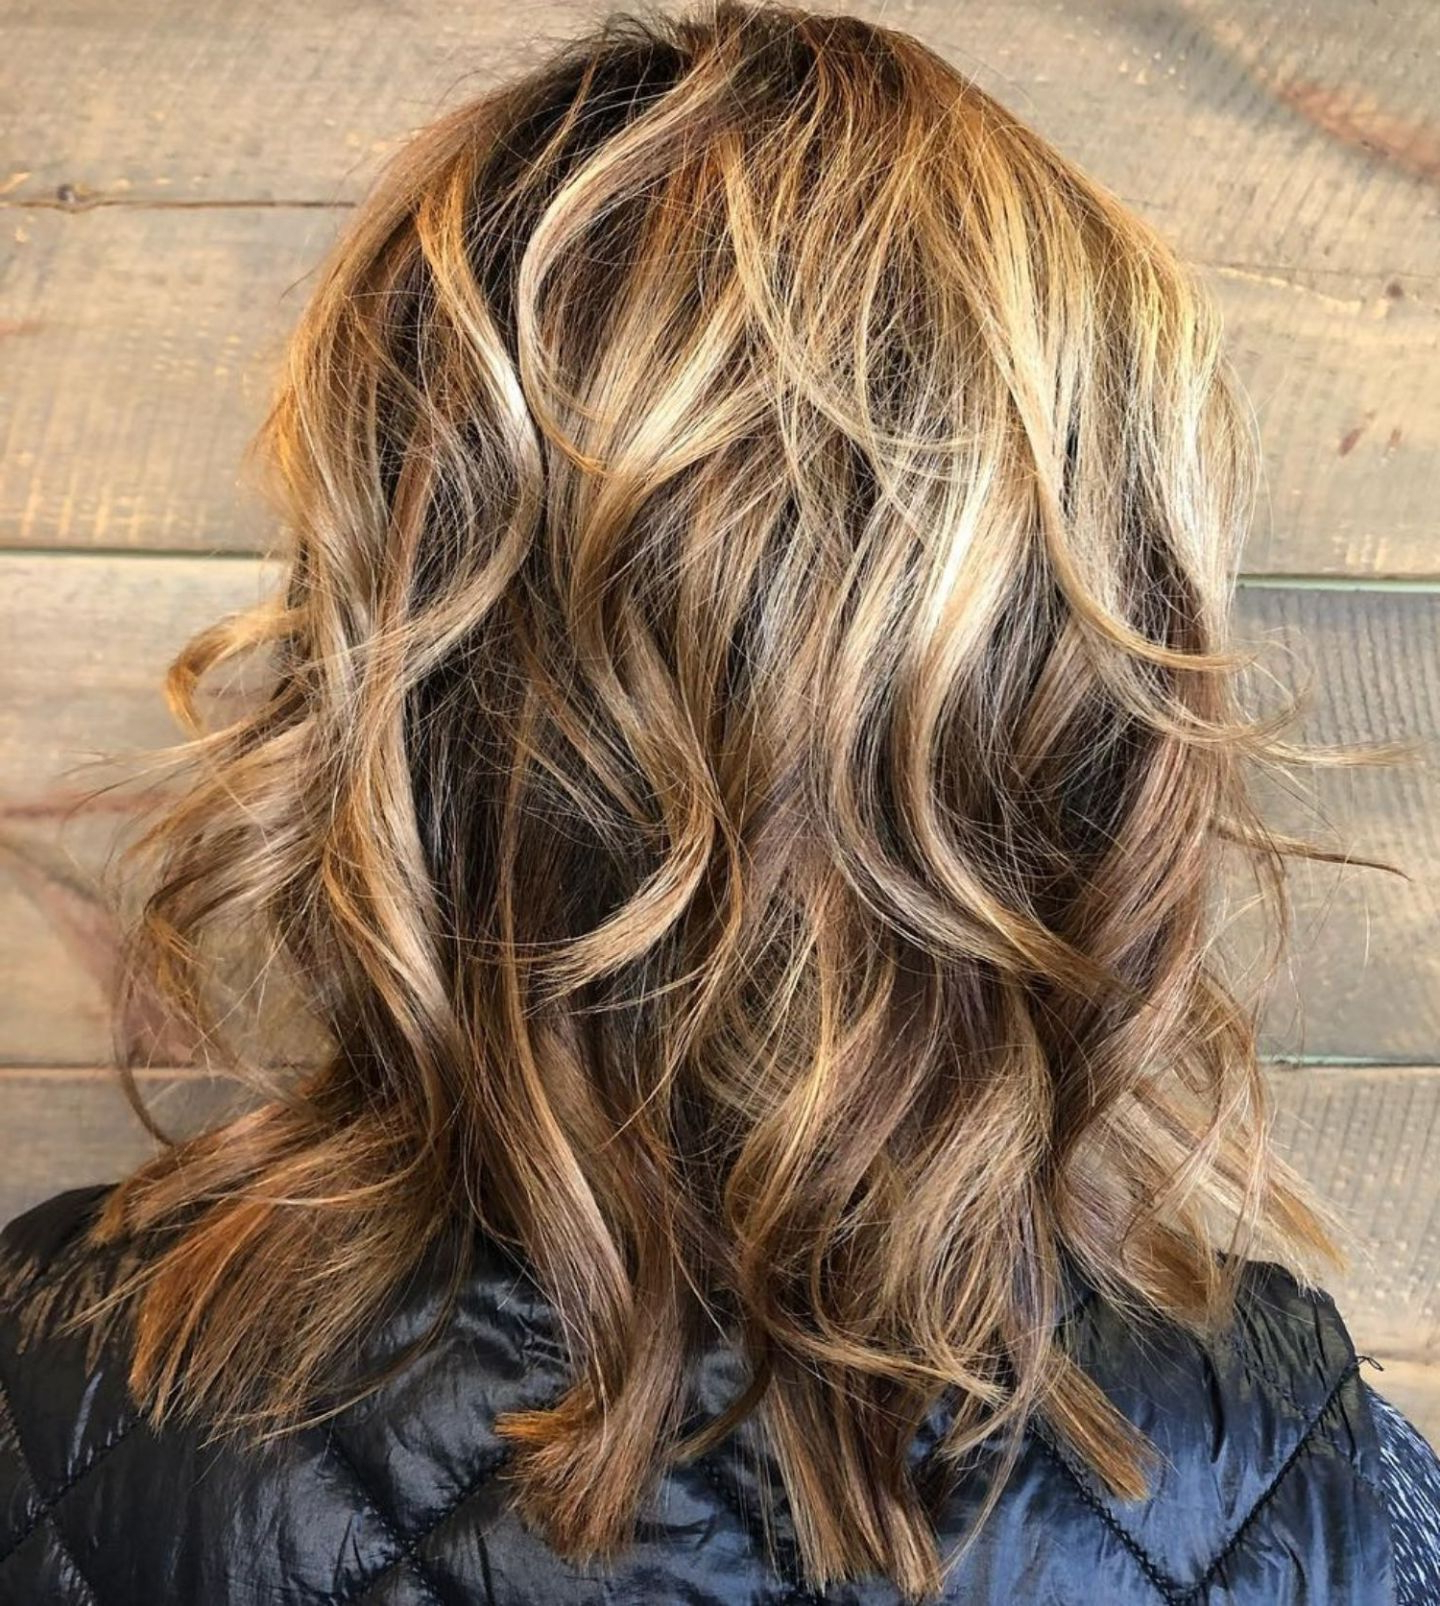 60 Best Variations Of A Medium Shag Haircut For Your In Most Recent Shiny Caramel Layers Long Shag Haircuts (Gallery 2 of 20)